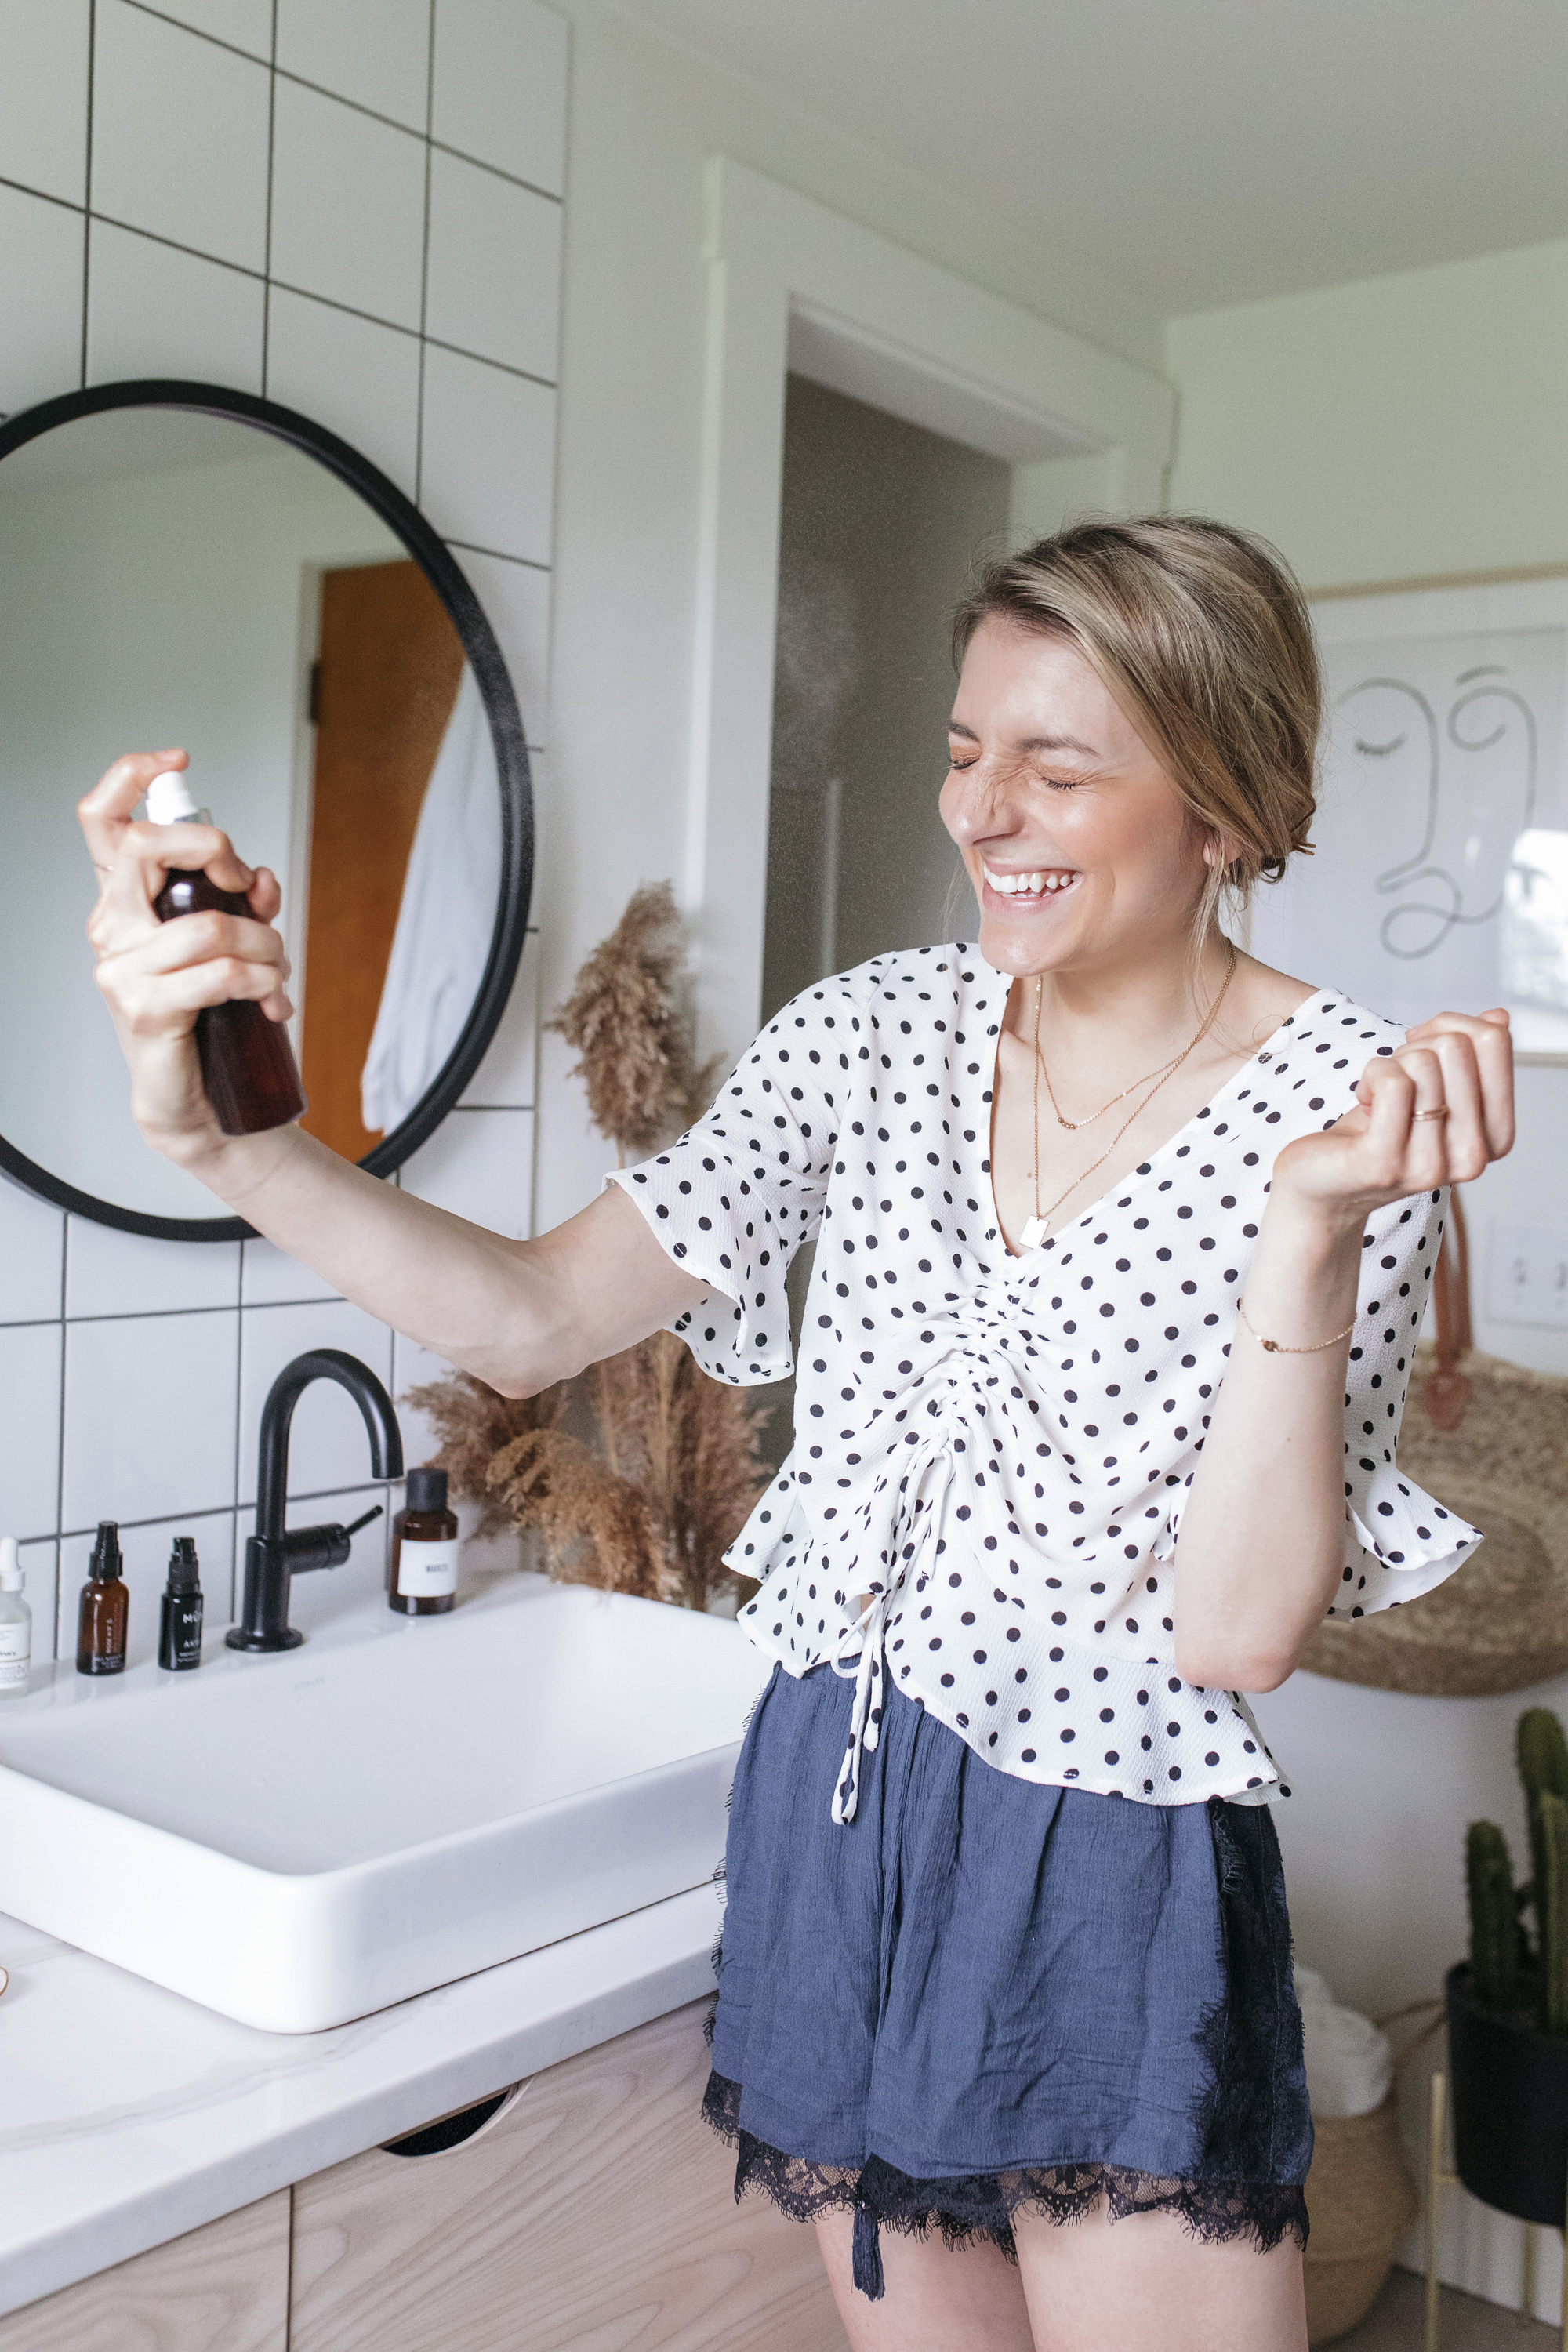 Creative blogger Emily r hess shares the secrets behind her skincare routine such as a hydrating hyaluronic acid mist to keep her skin fresh